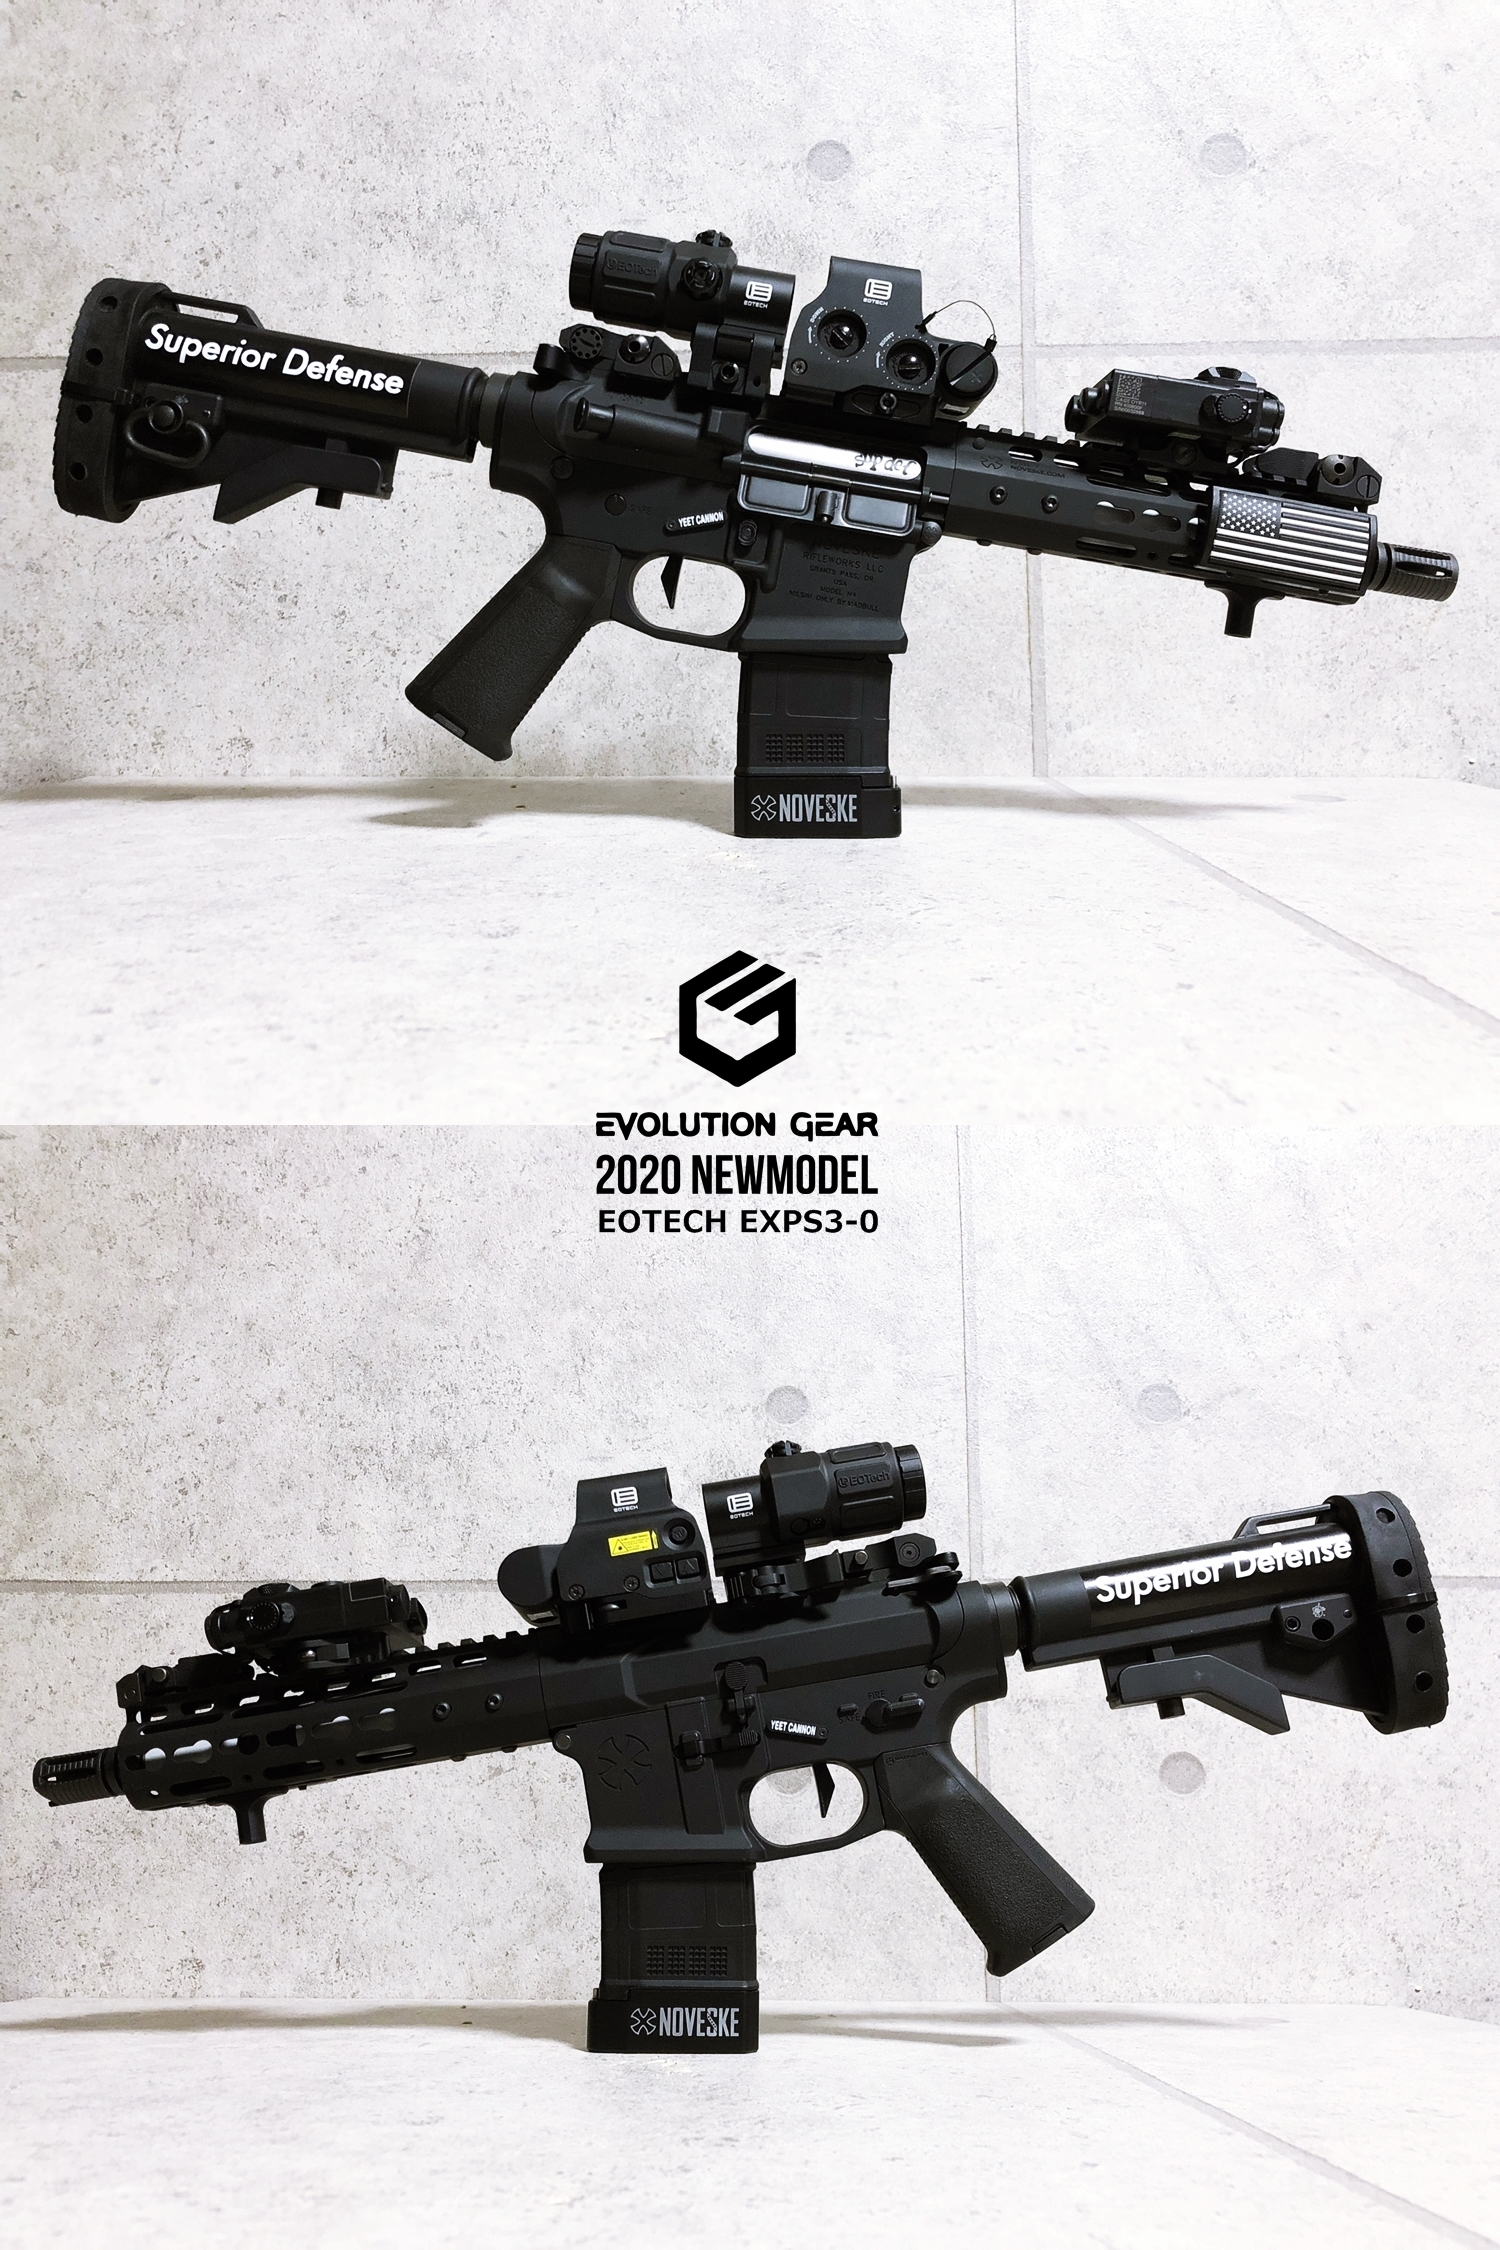 14 EVOLUTION GEAR 2020 改良版 EOTech EXPS3-0 NEW!! 最新リアルバージョンの改良点を徹底検証だ!! 新エボギア & 旧エボギア & 実物 イオテック ホロサイト!! 開封 比較 検証 取付 レビュー!!